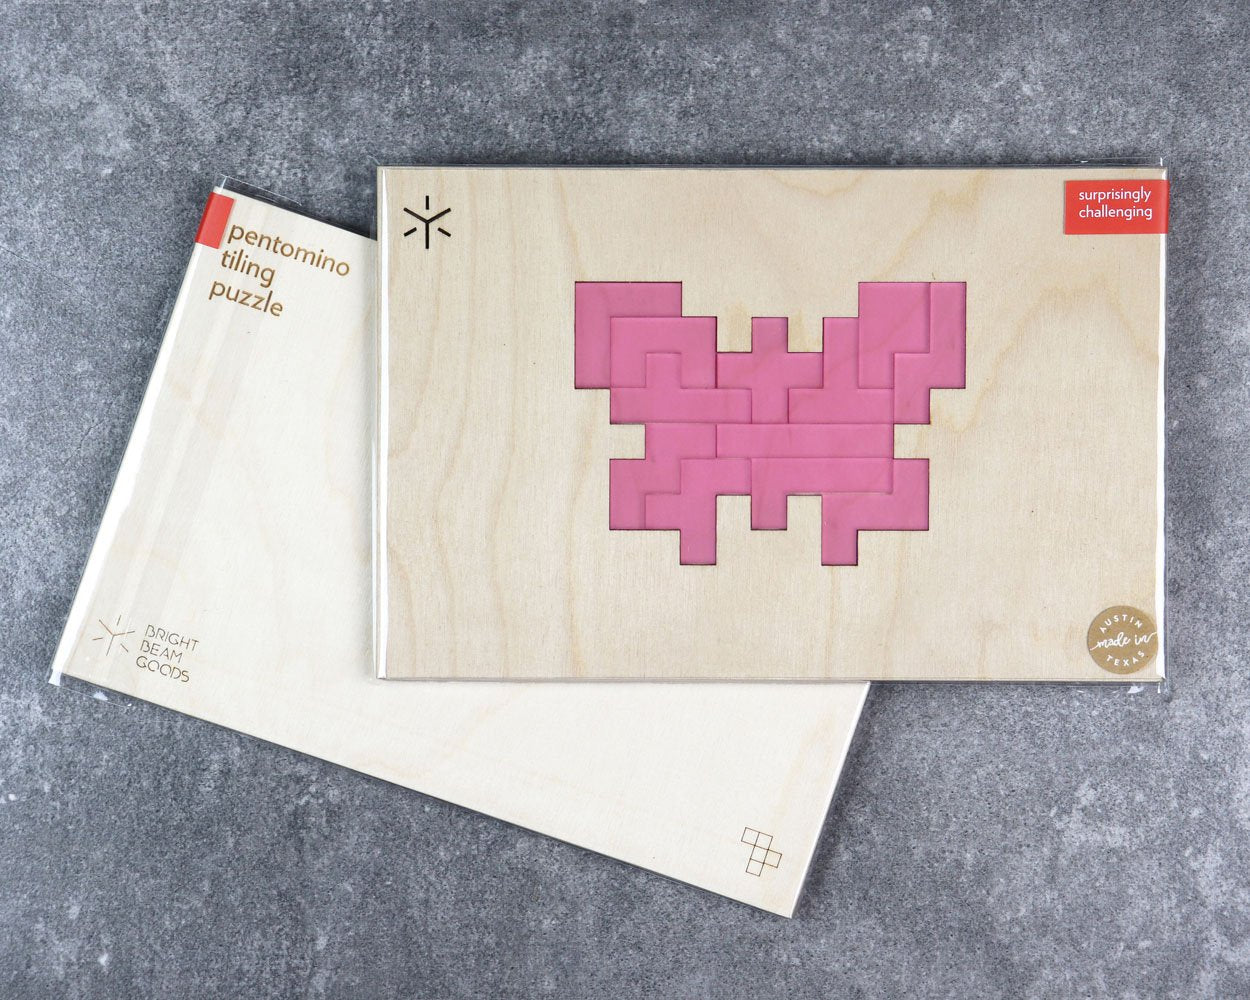 Butterfly pentomino puzzle in packaging